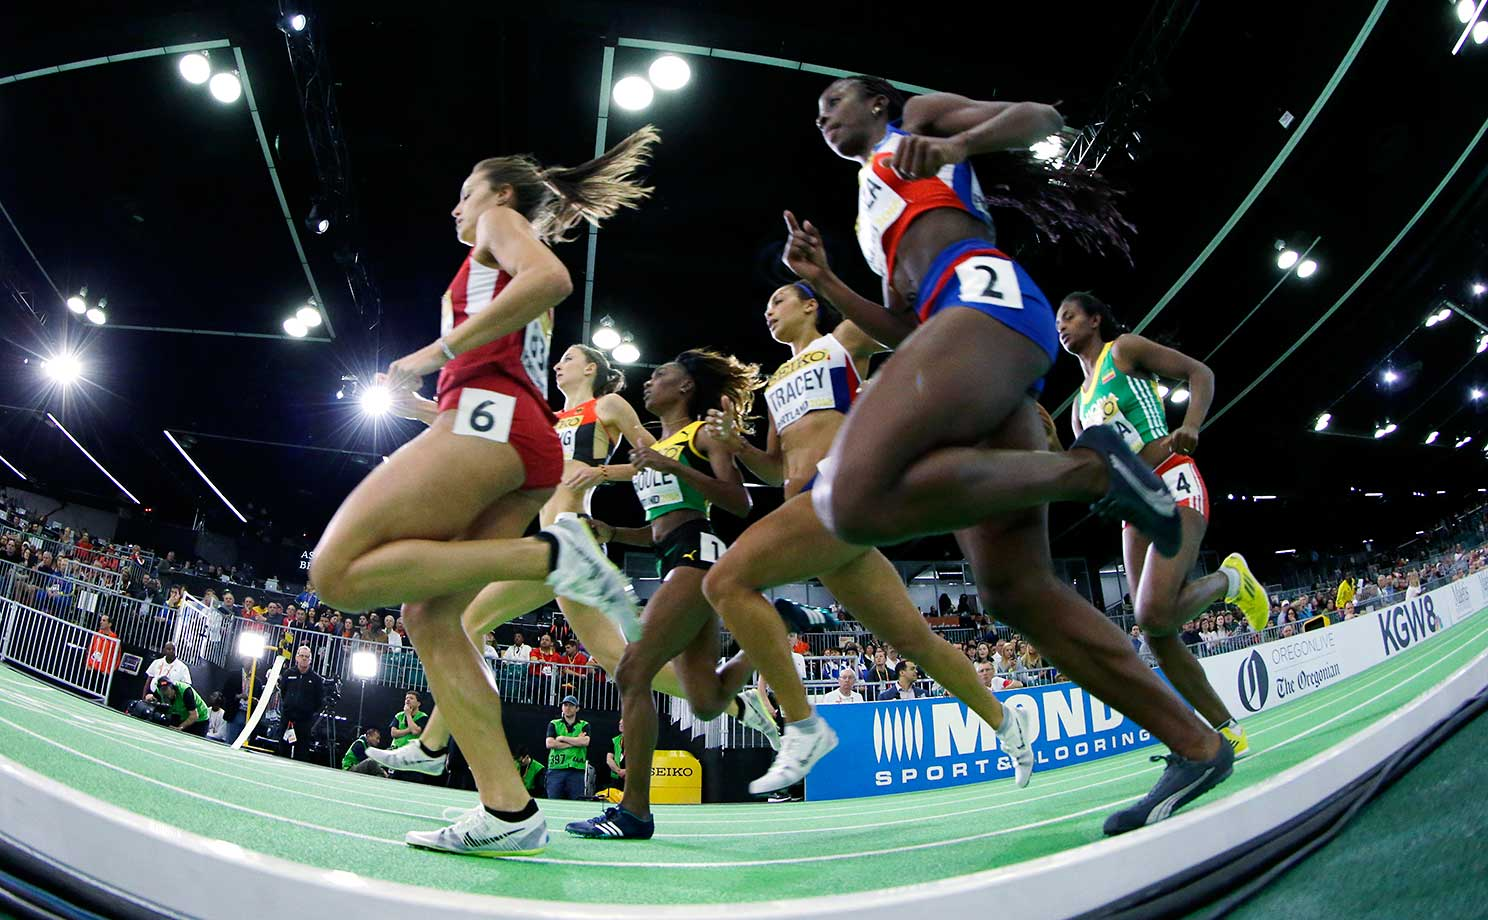 U.S. sprinter Laura Roesler (6) runs in a heat of the 800 during the World Indoor Athletics Championships.